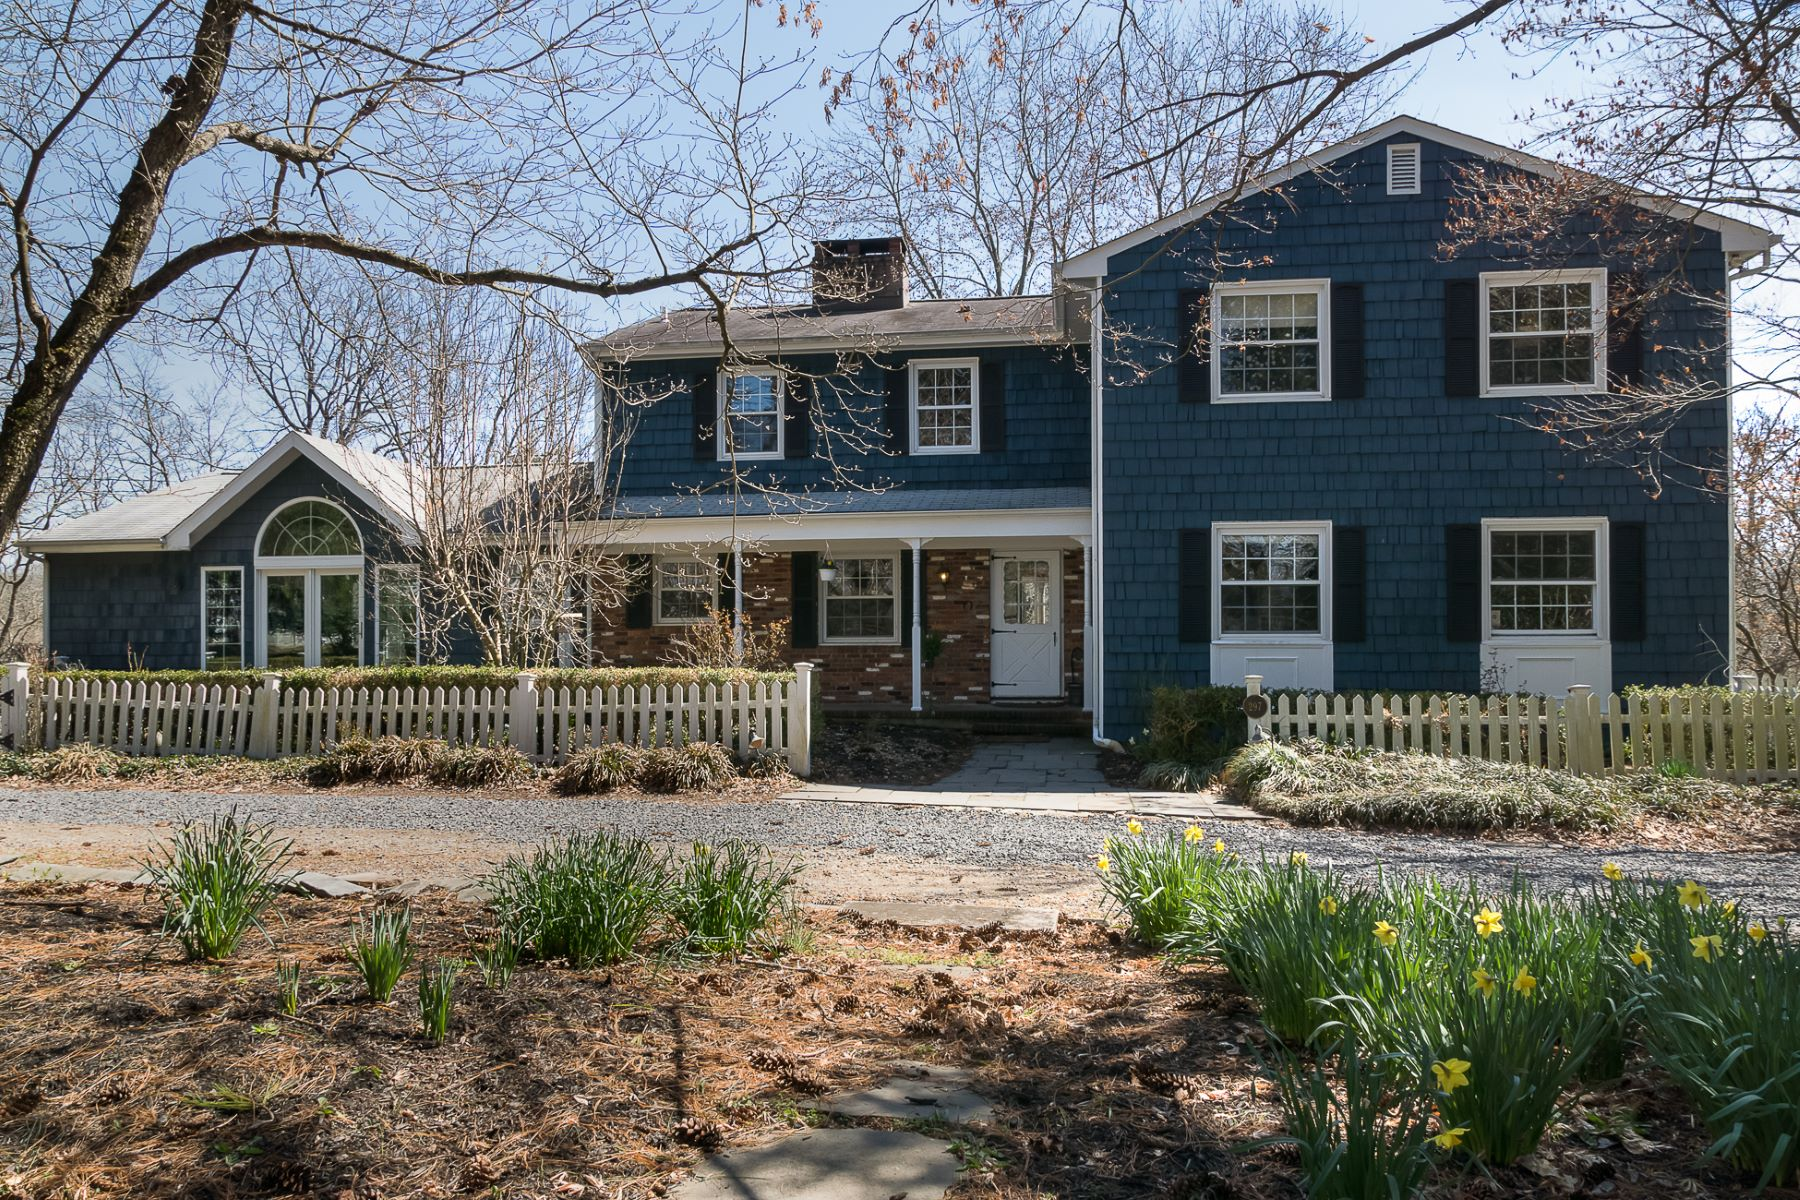 Single Family Homes für Verkauf beim The Relaxed Pace of the Country Life Yet Convenient to All 297 Millstone River Road, Belle Mead, New Jersey 08502 Vereinigte Staaten